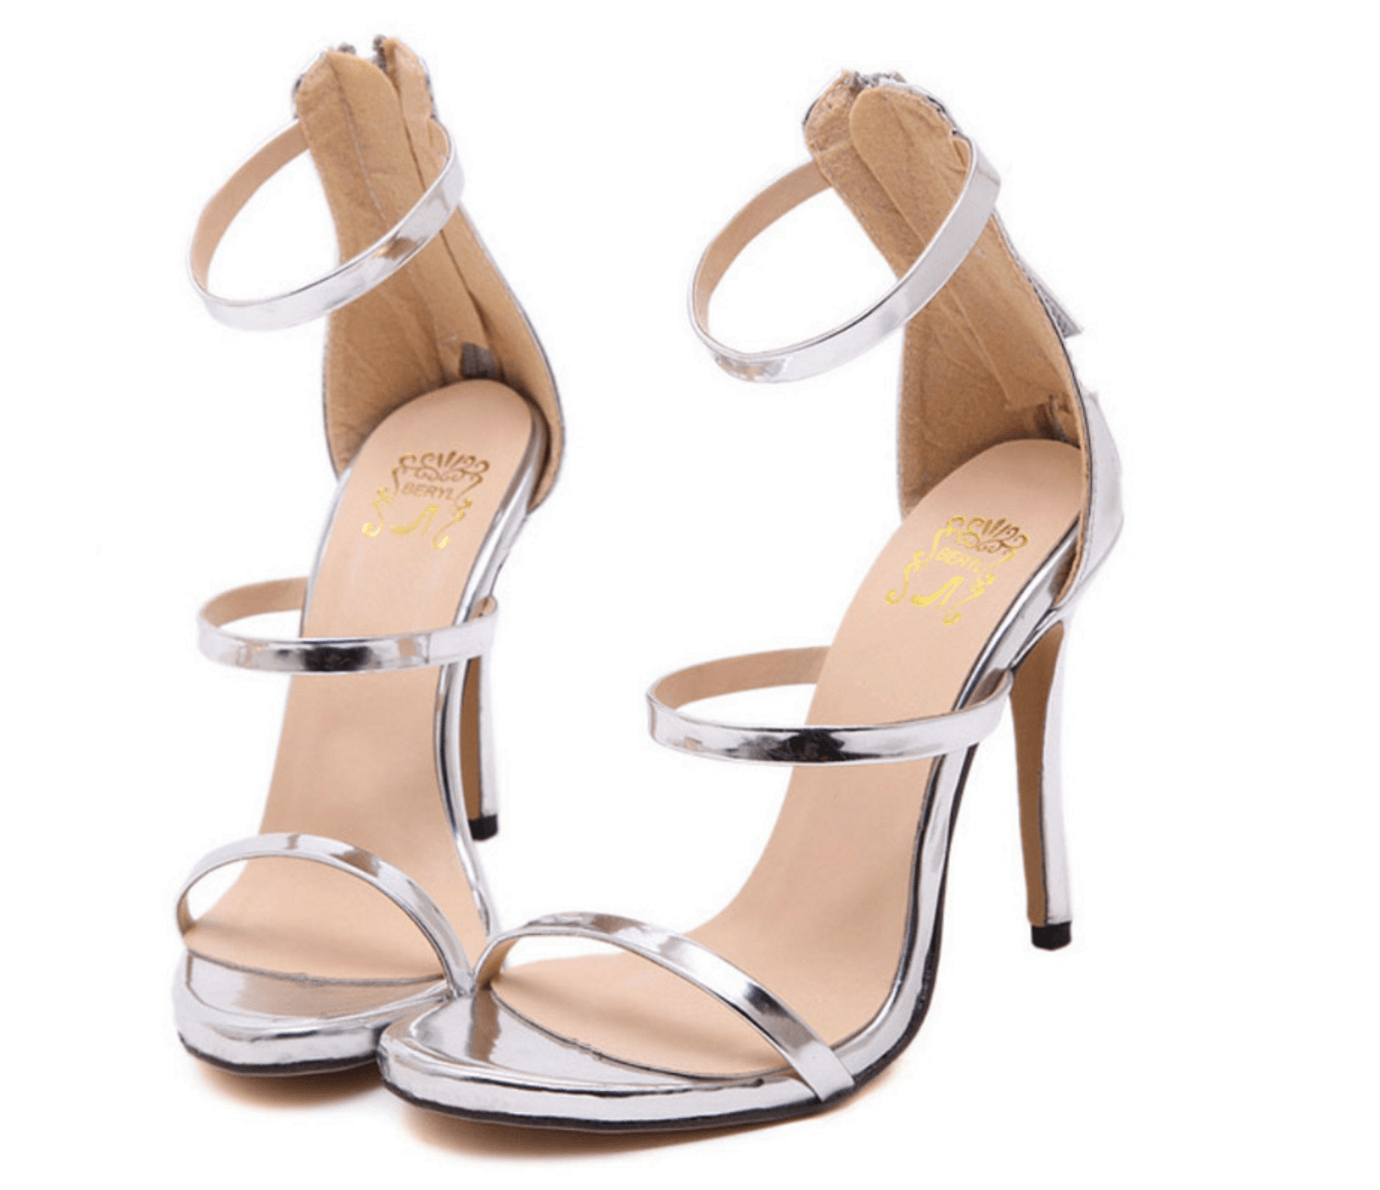 478cb03cc9f Silver color patent leather high heel sandals strappy ankle-wrap style